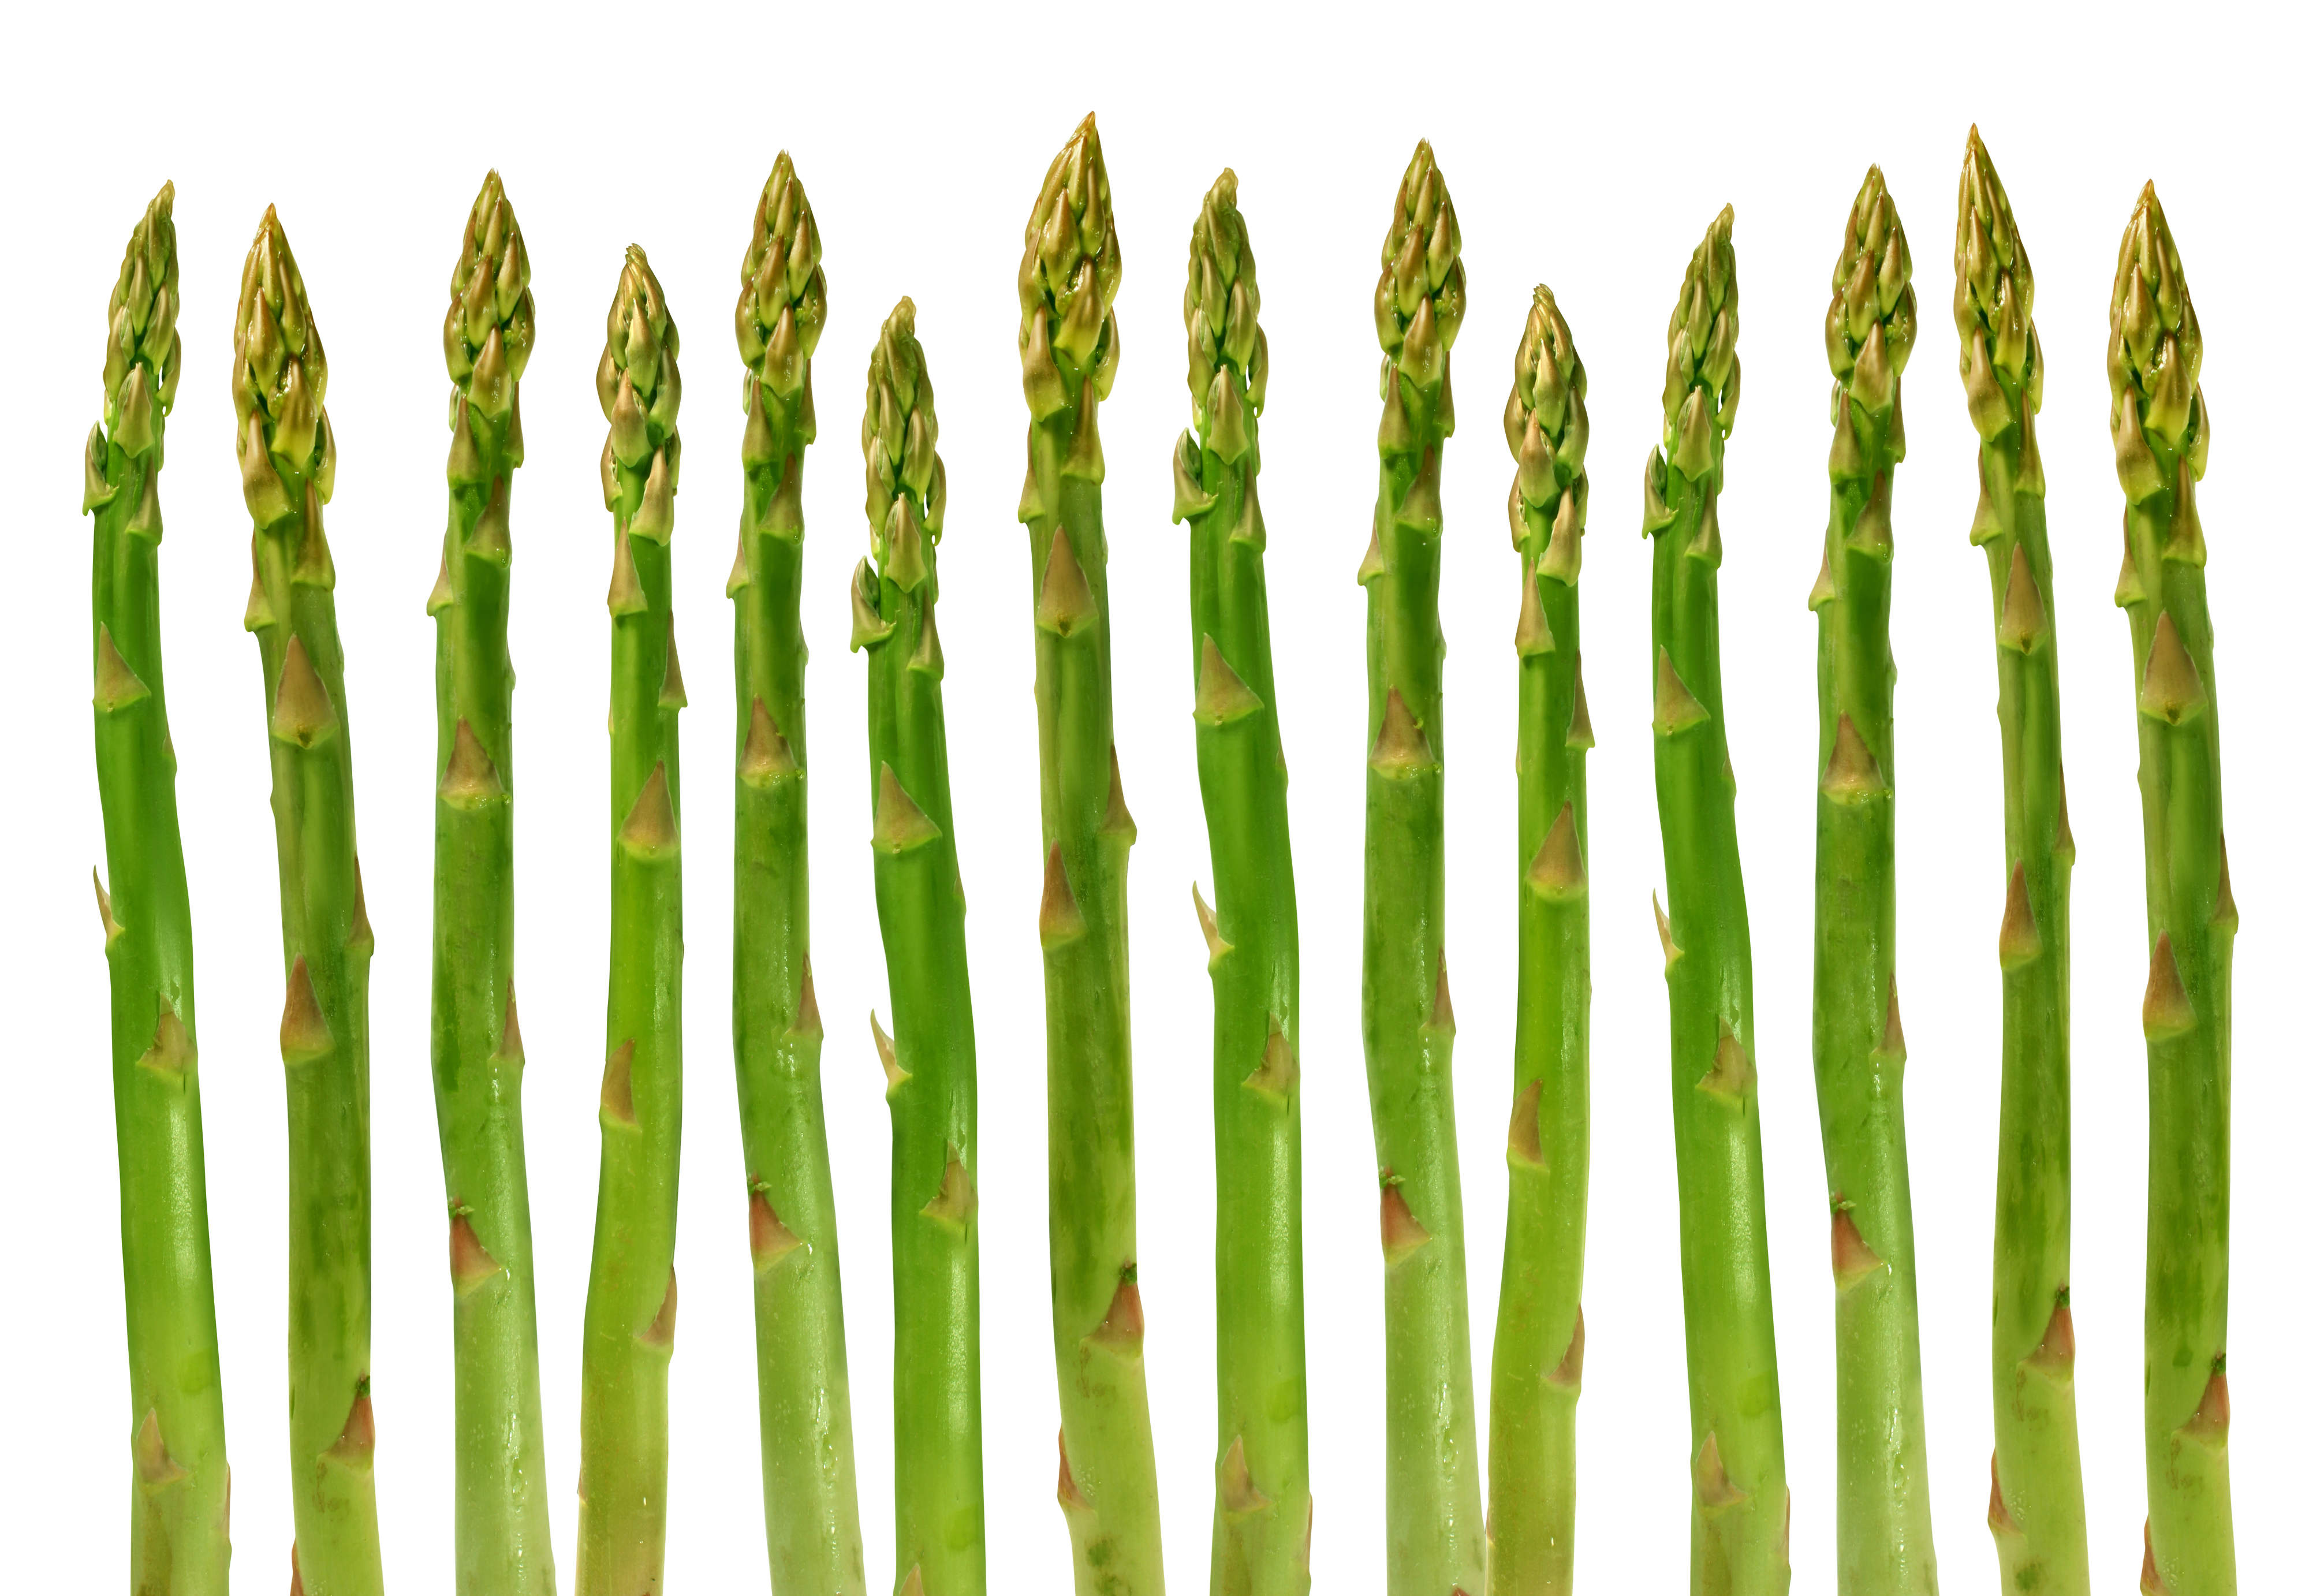 Asparagus group of green healthy vegetables organized in a row isolated on a white background as a food concept of health diet and living a natural fit well nourished life.